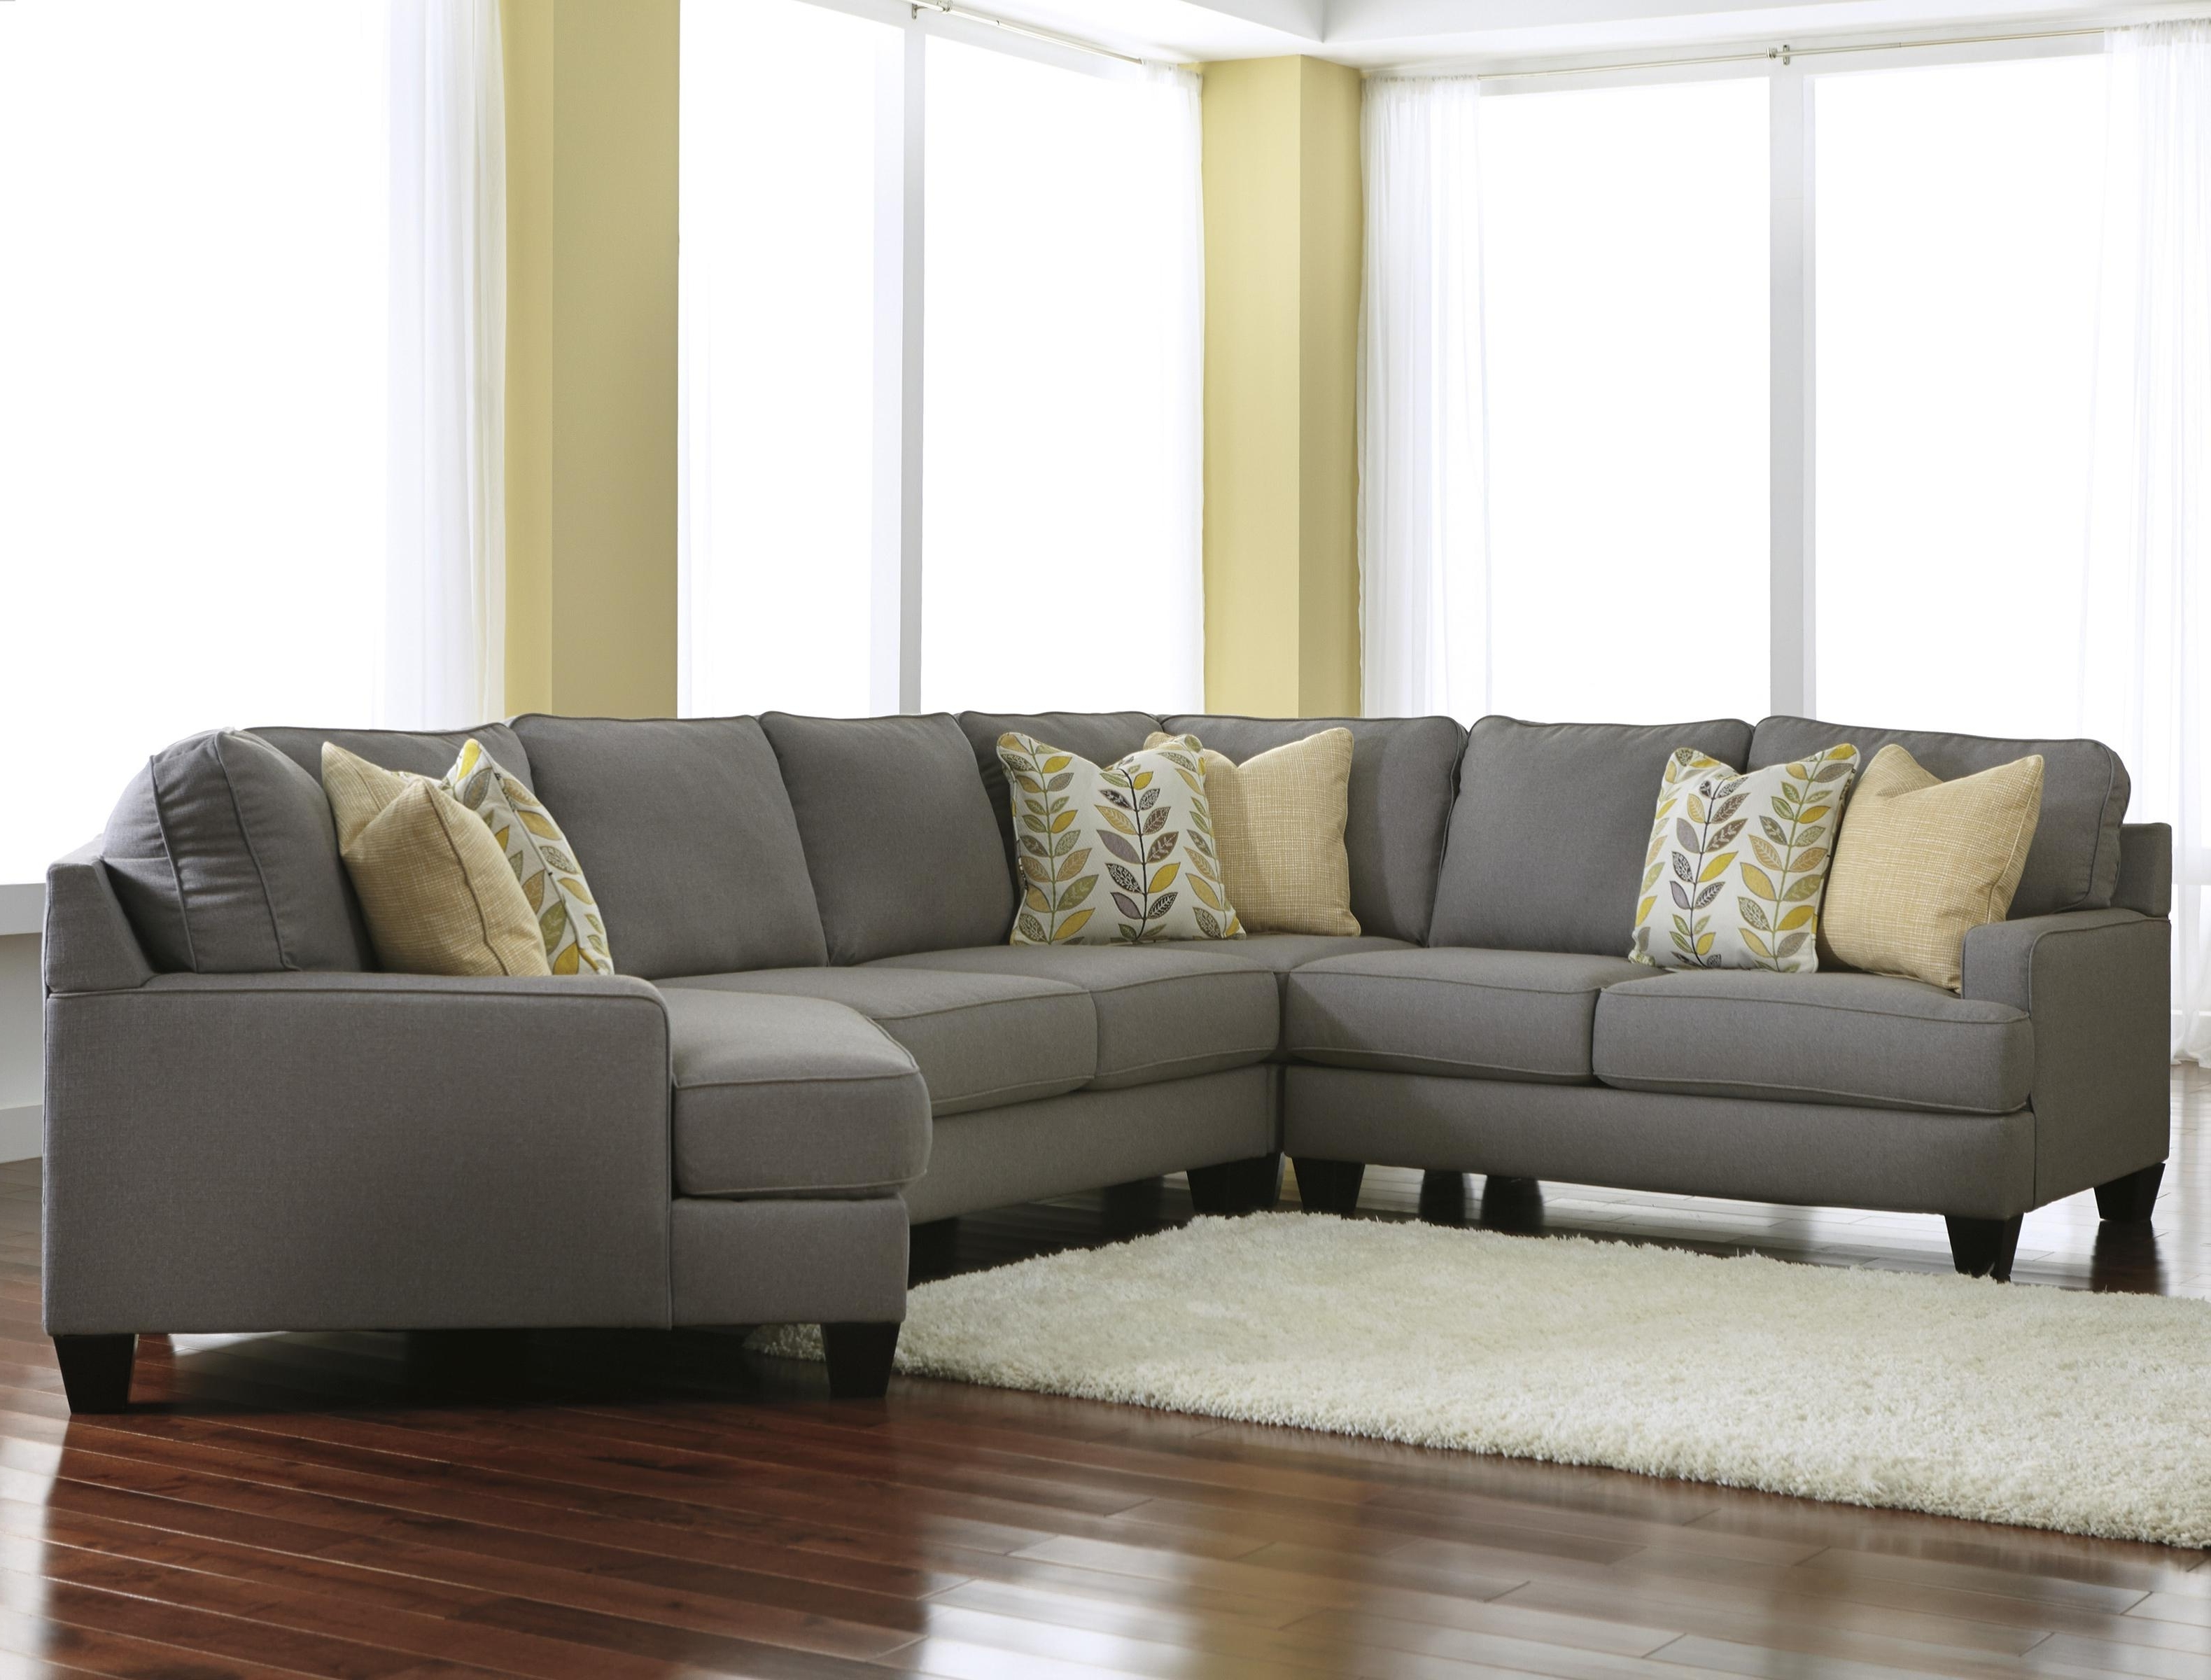 Modern 4 Piece Sectional Sofa With Right Cuddler & Reversible Seat Regarding Popular Lancaster Pa Sectional Sofas (View 18 of 20)